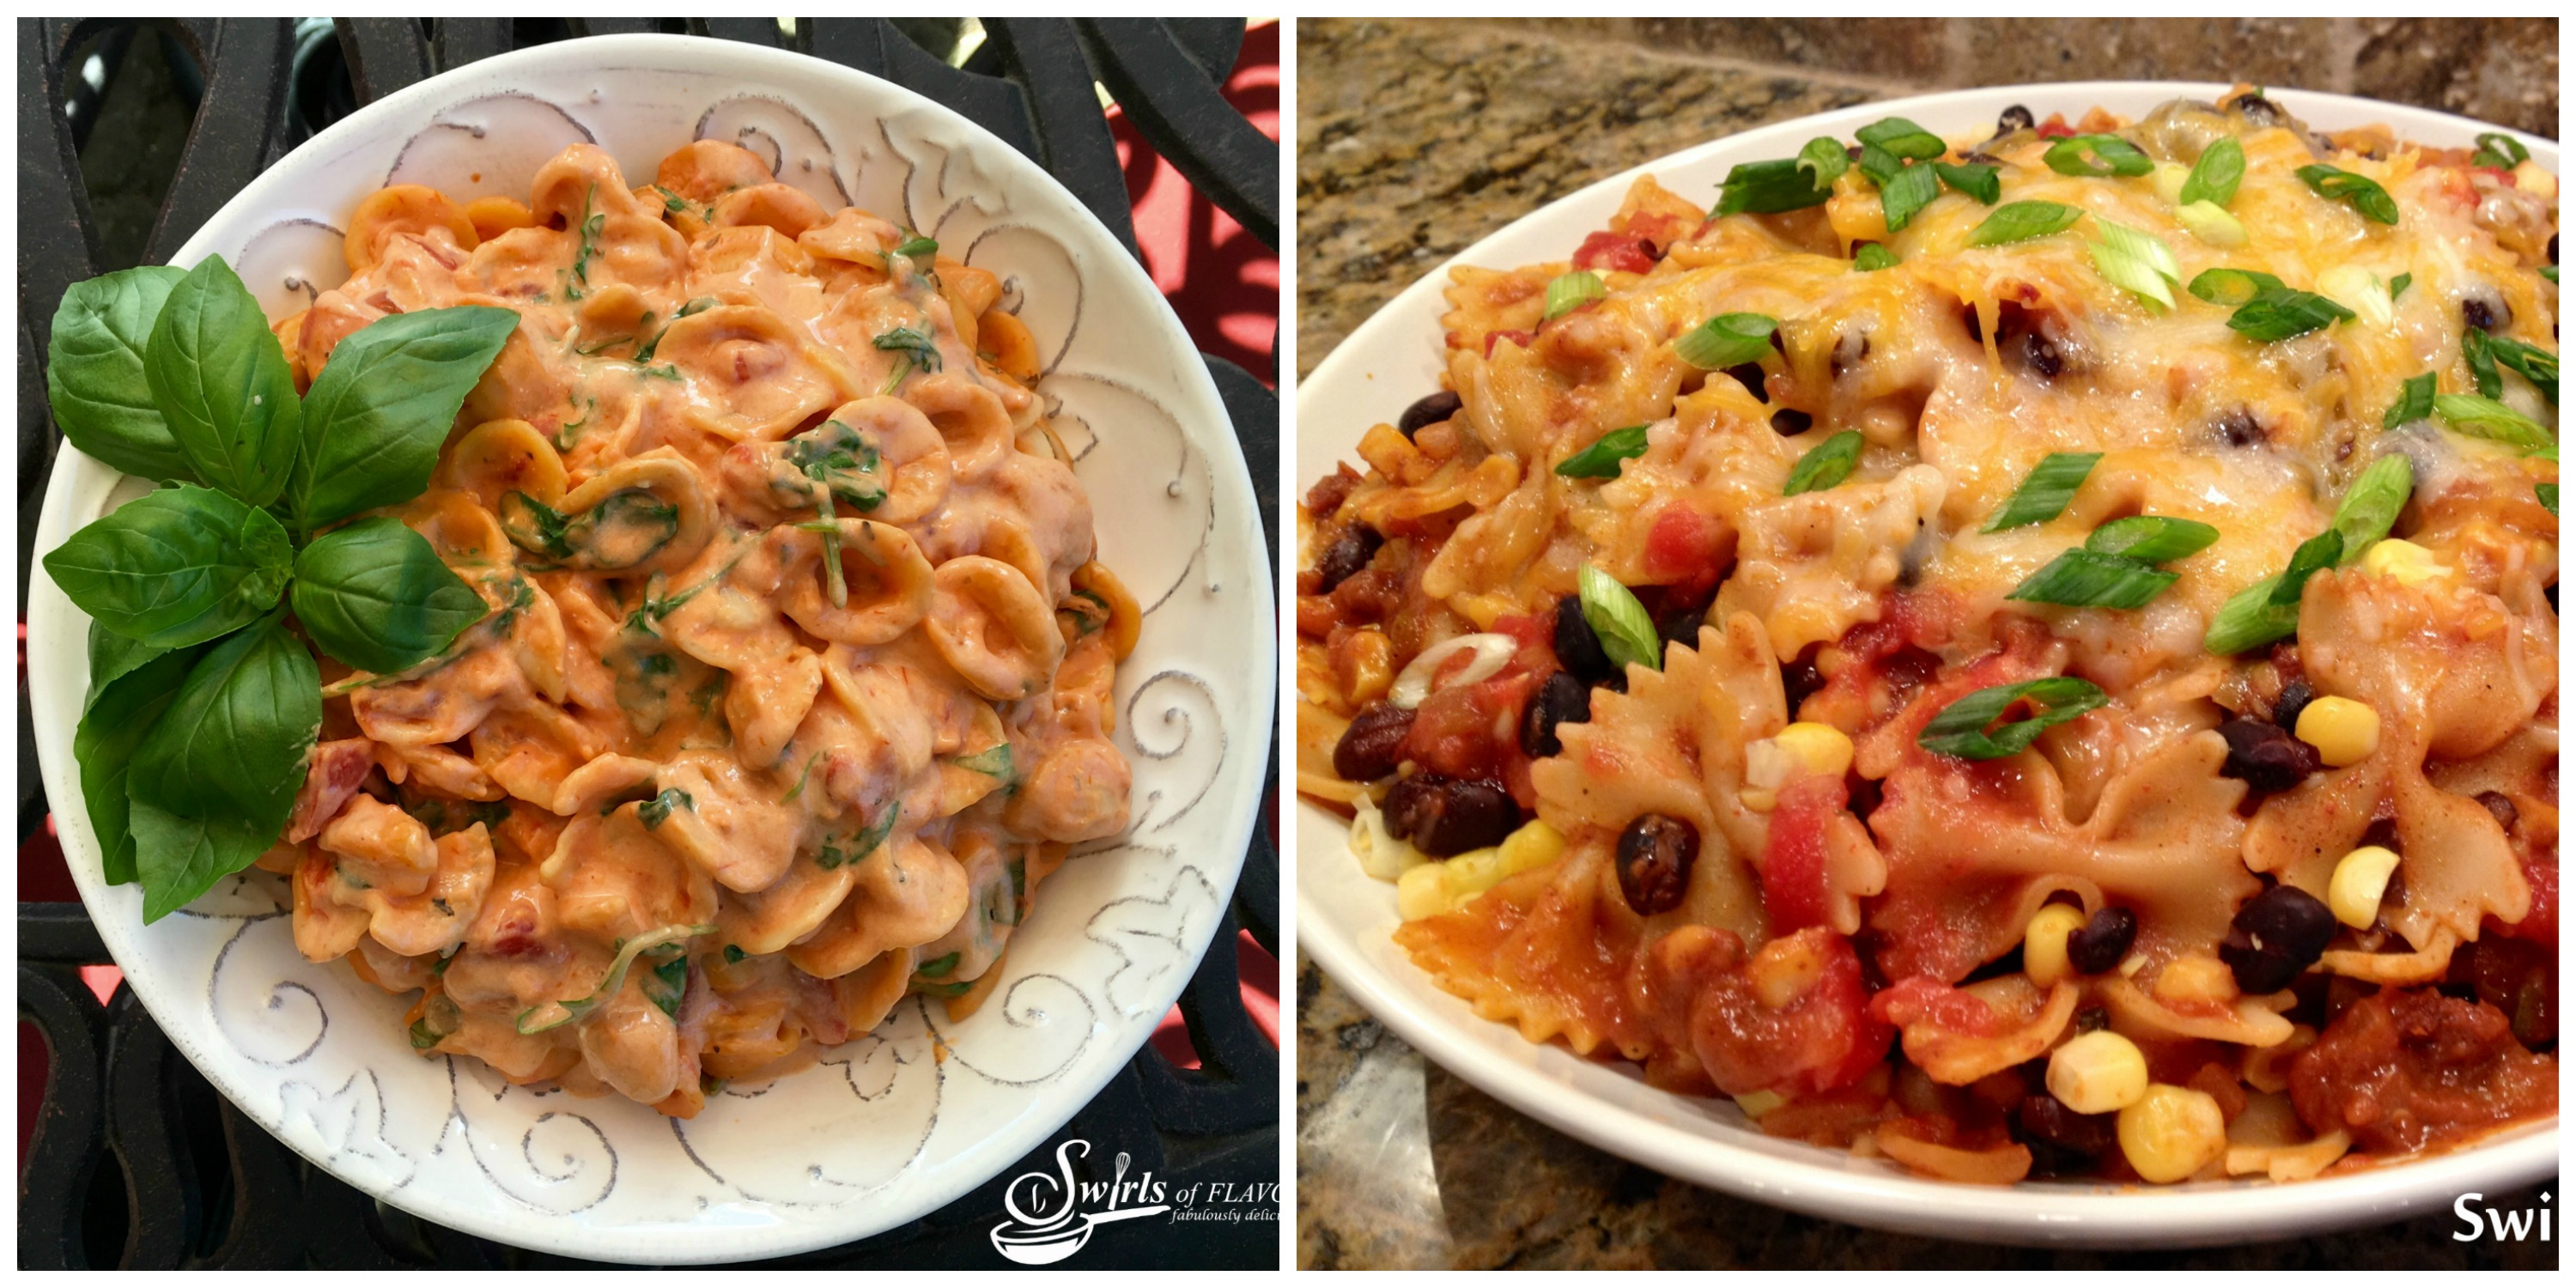 Creamy Tomato Pasta and Mexicali Pasta